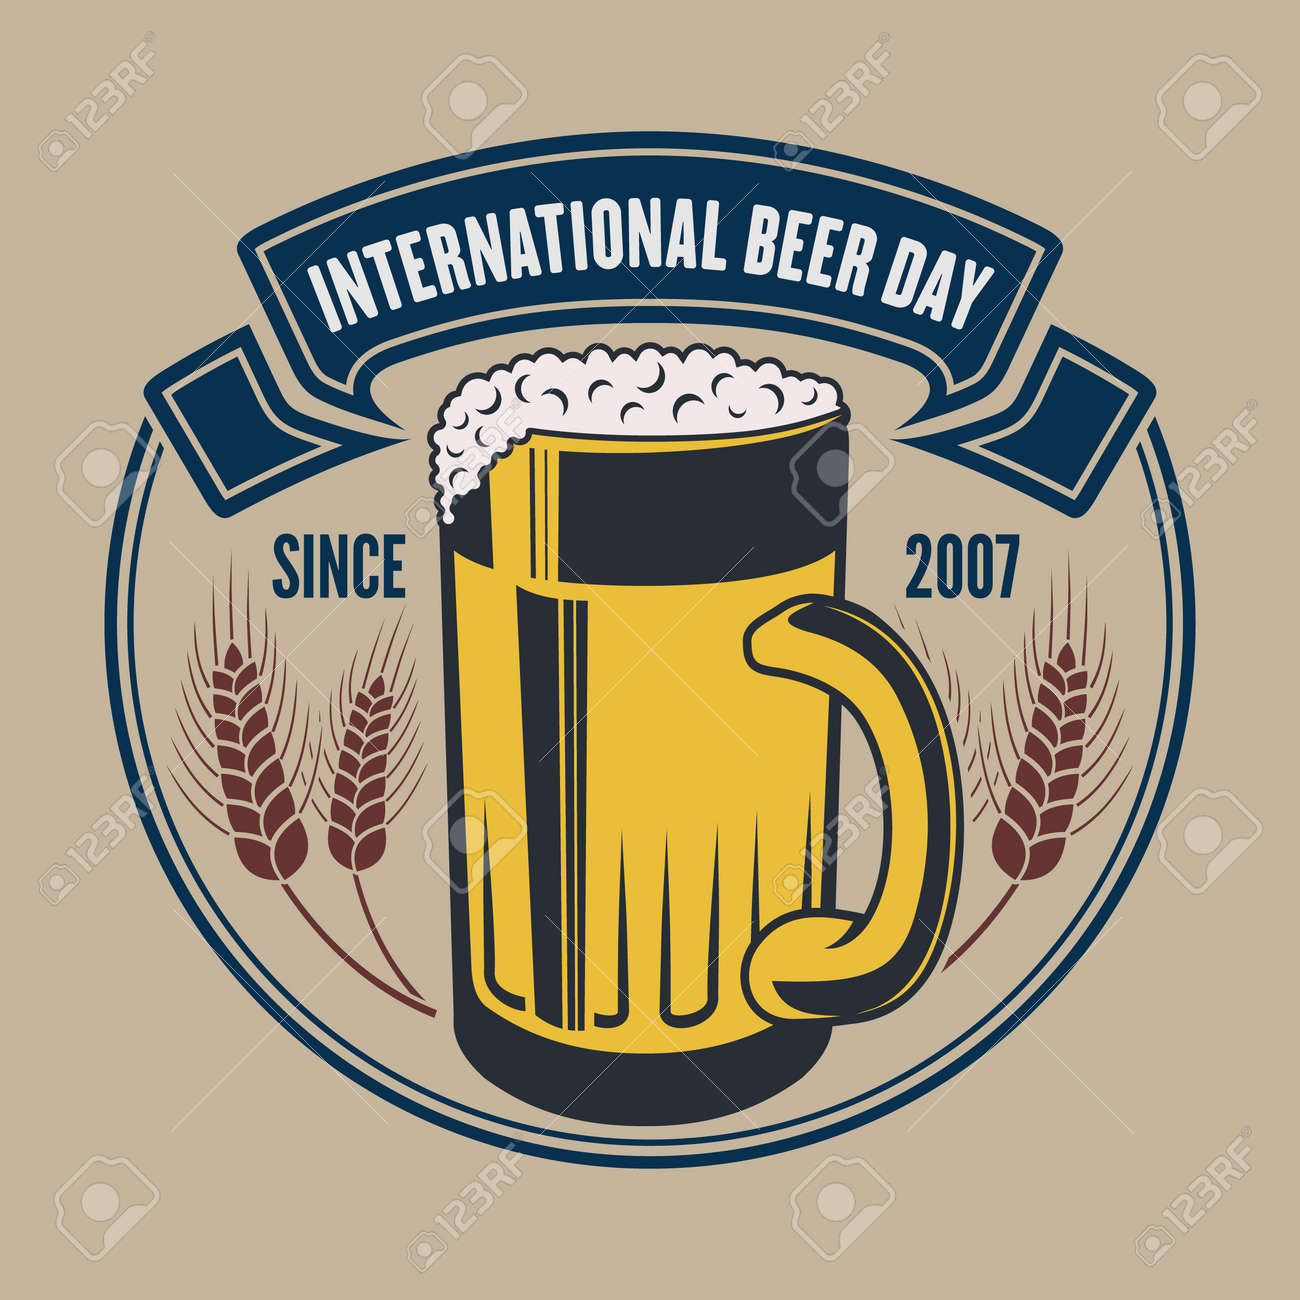 International Beer Day poster or banner template - 171153808